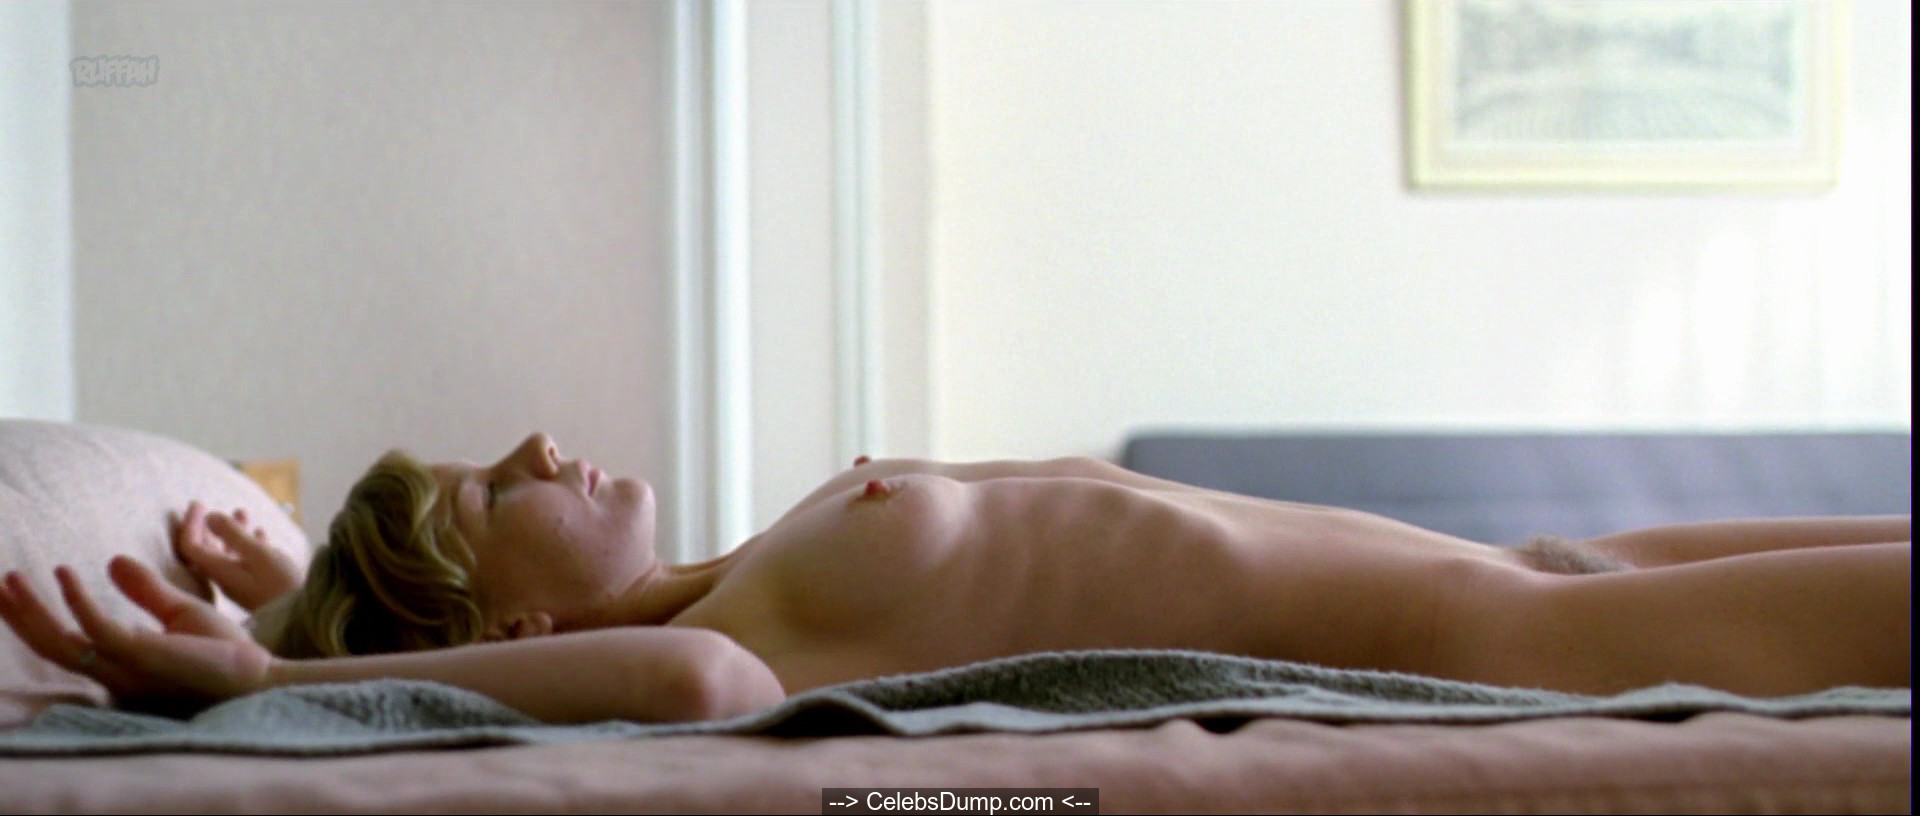 Sandra prinsloo nude, sexy, the fappening, uncensored